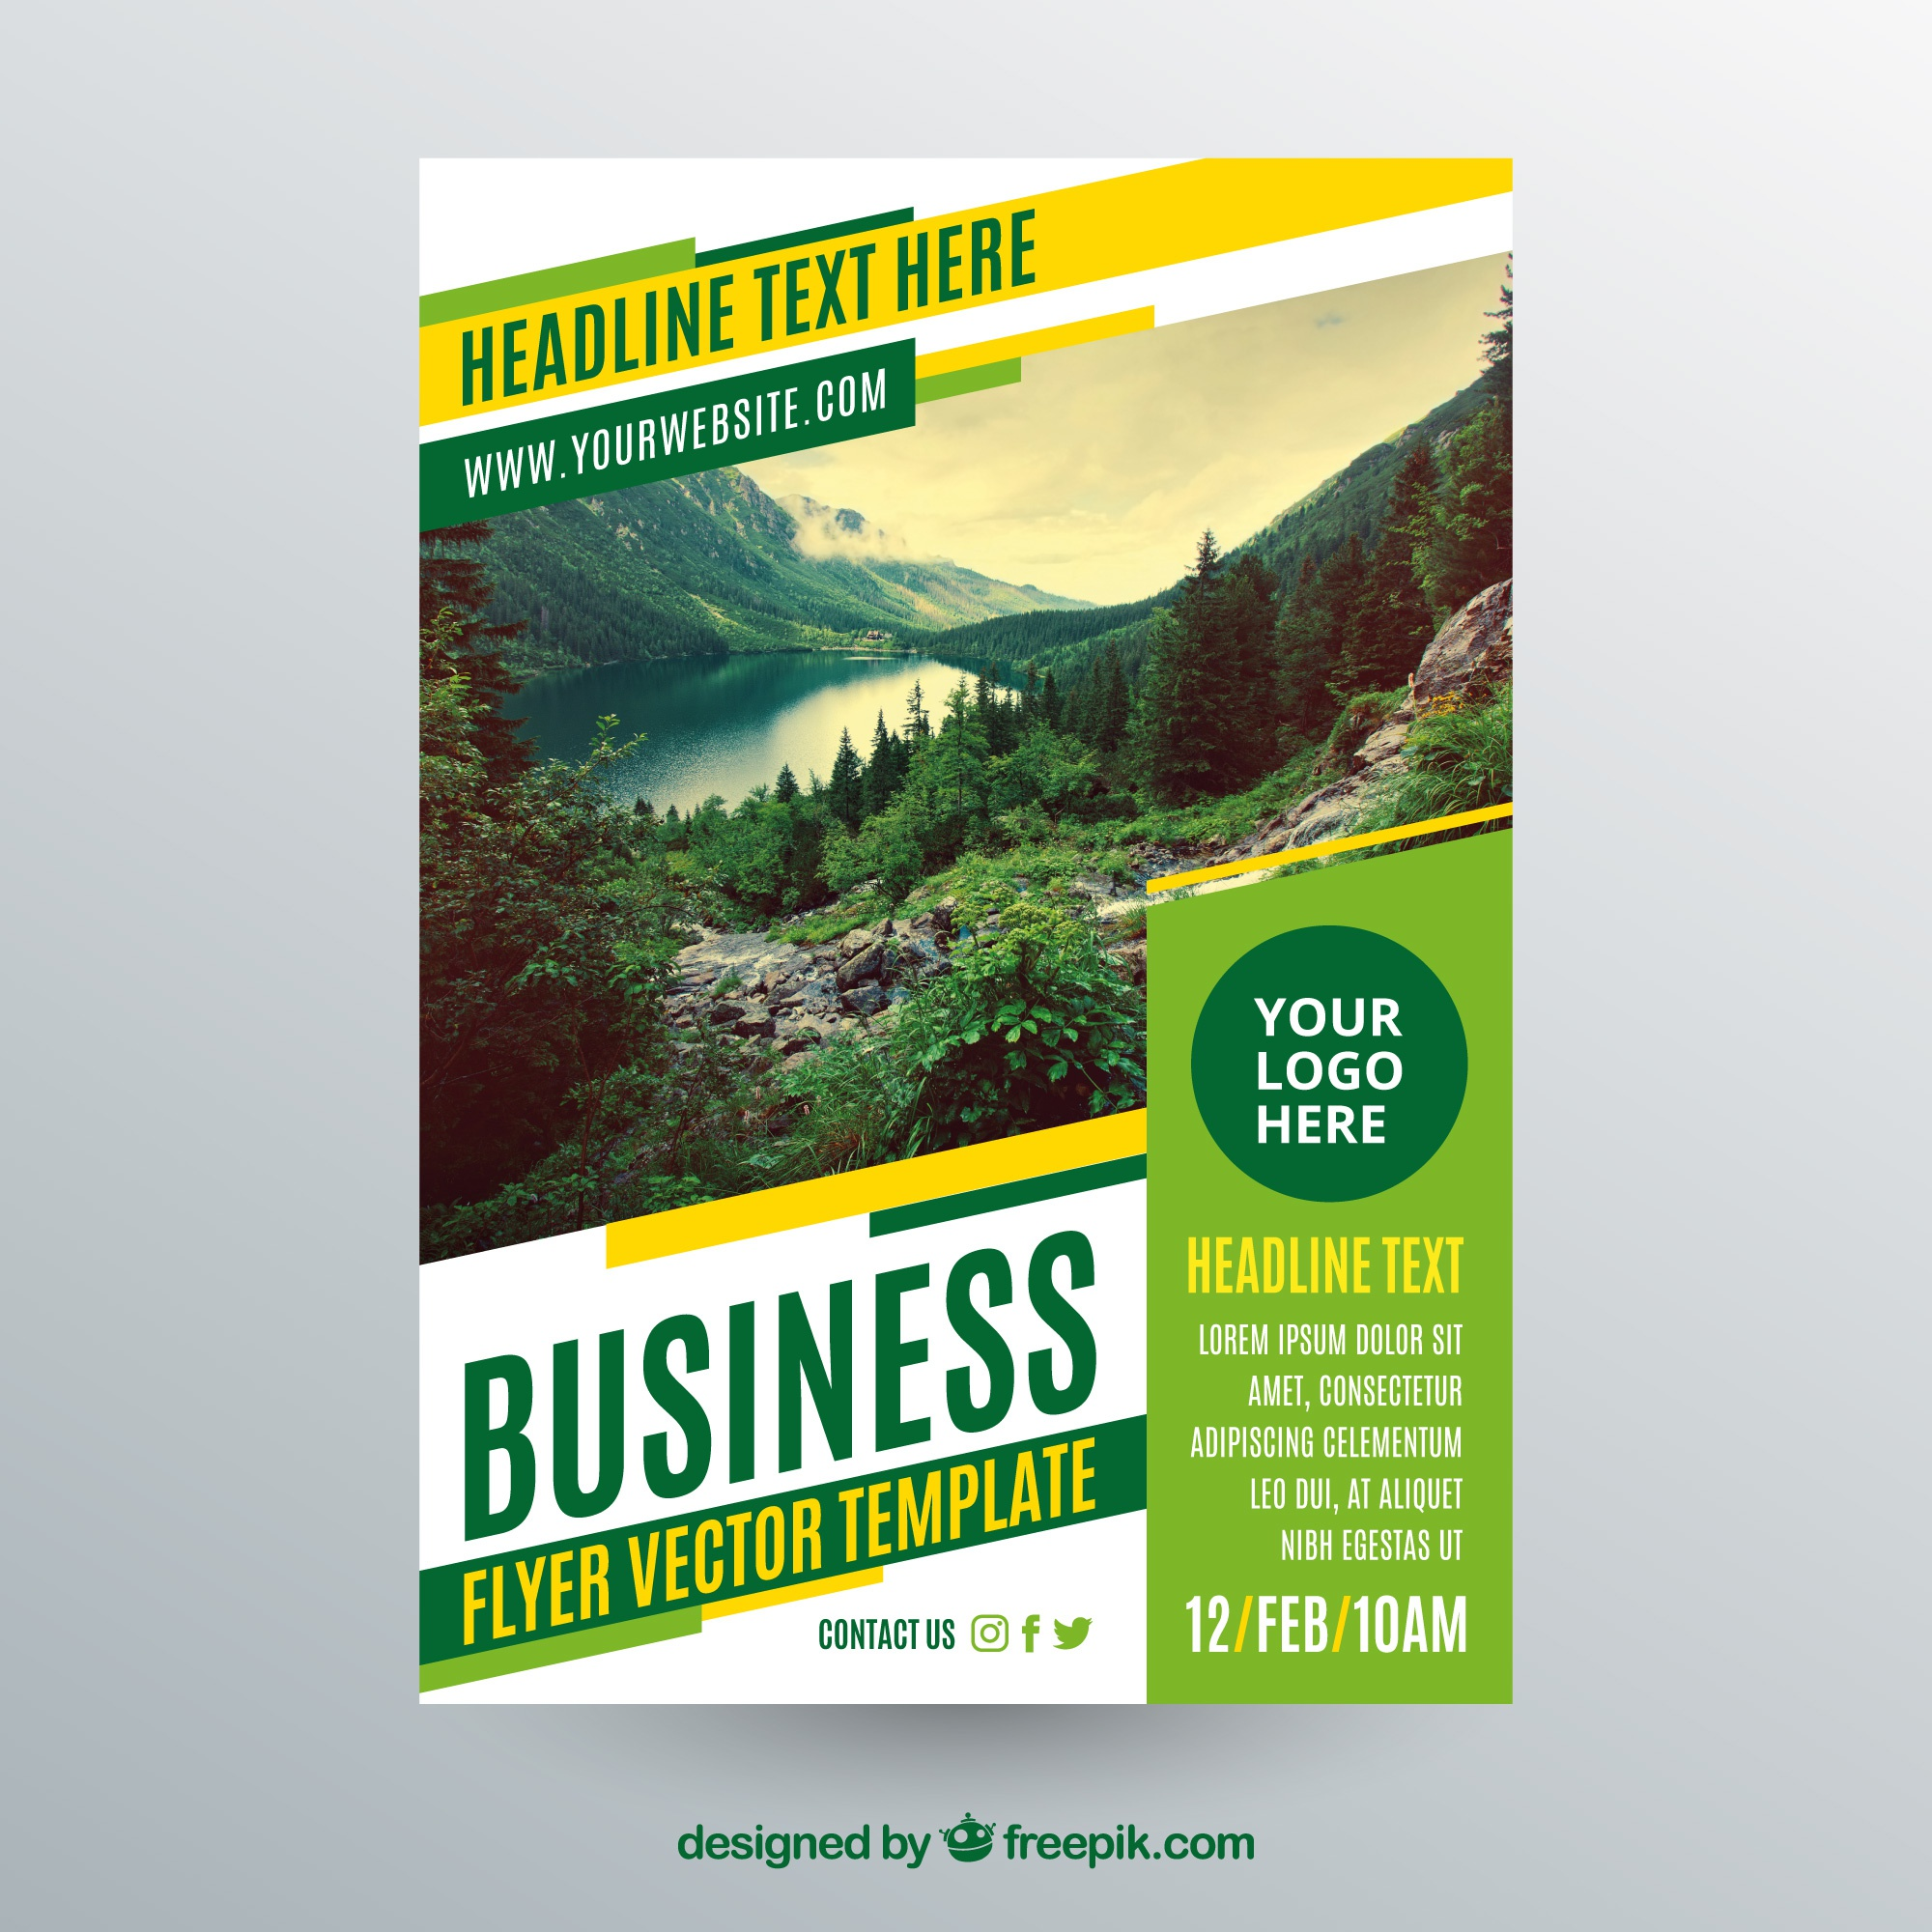 Business flyer template with photo of landscape